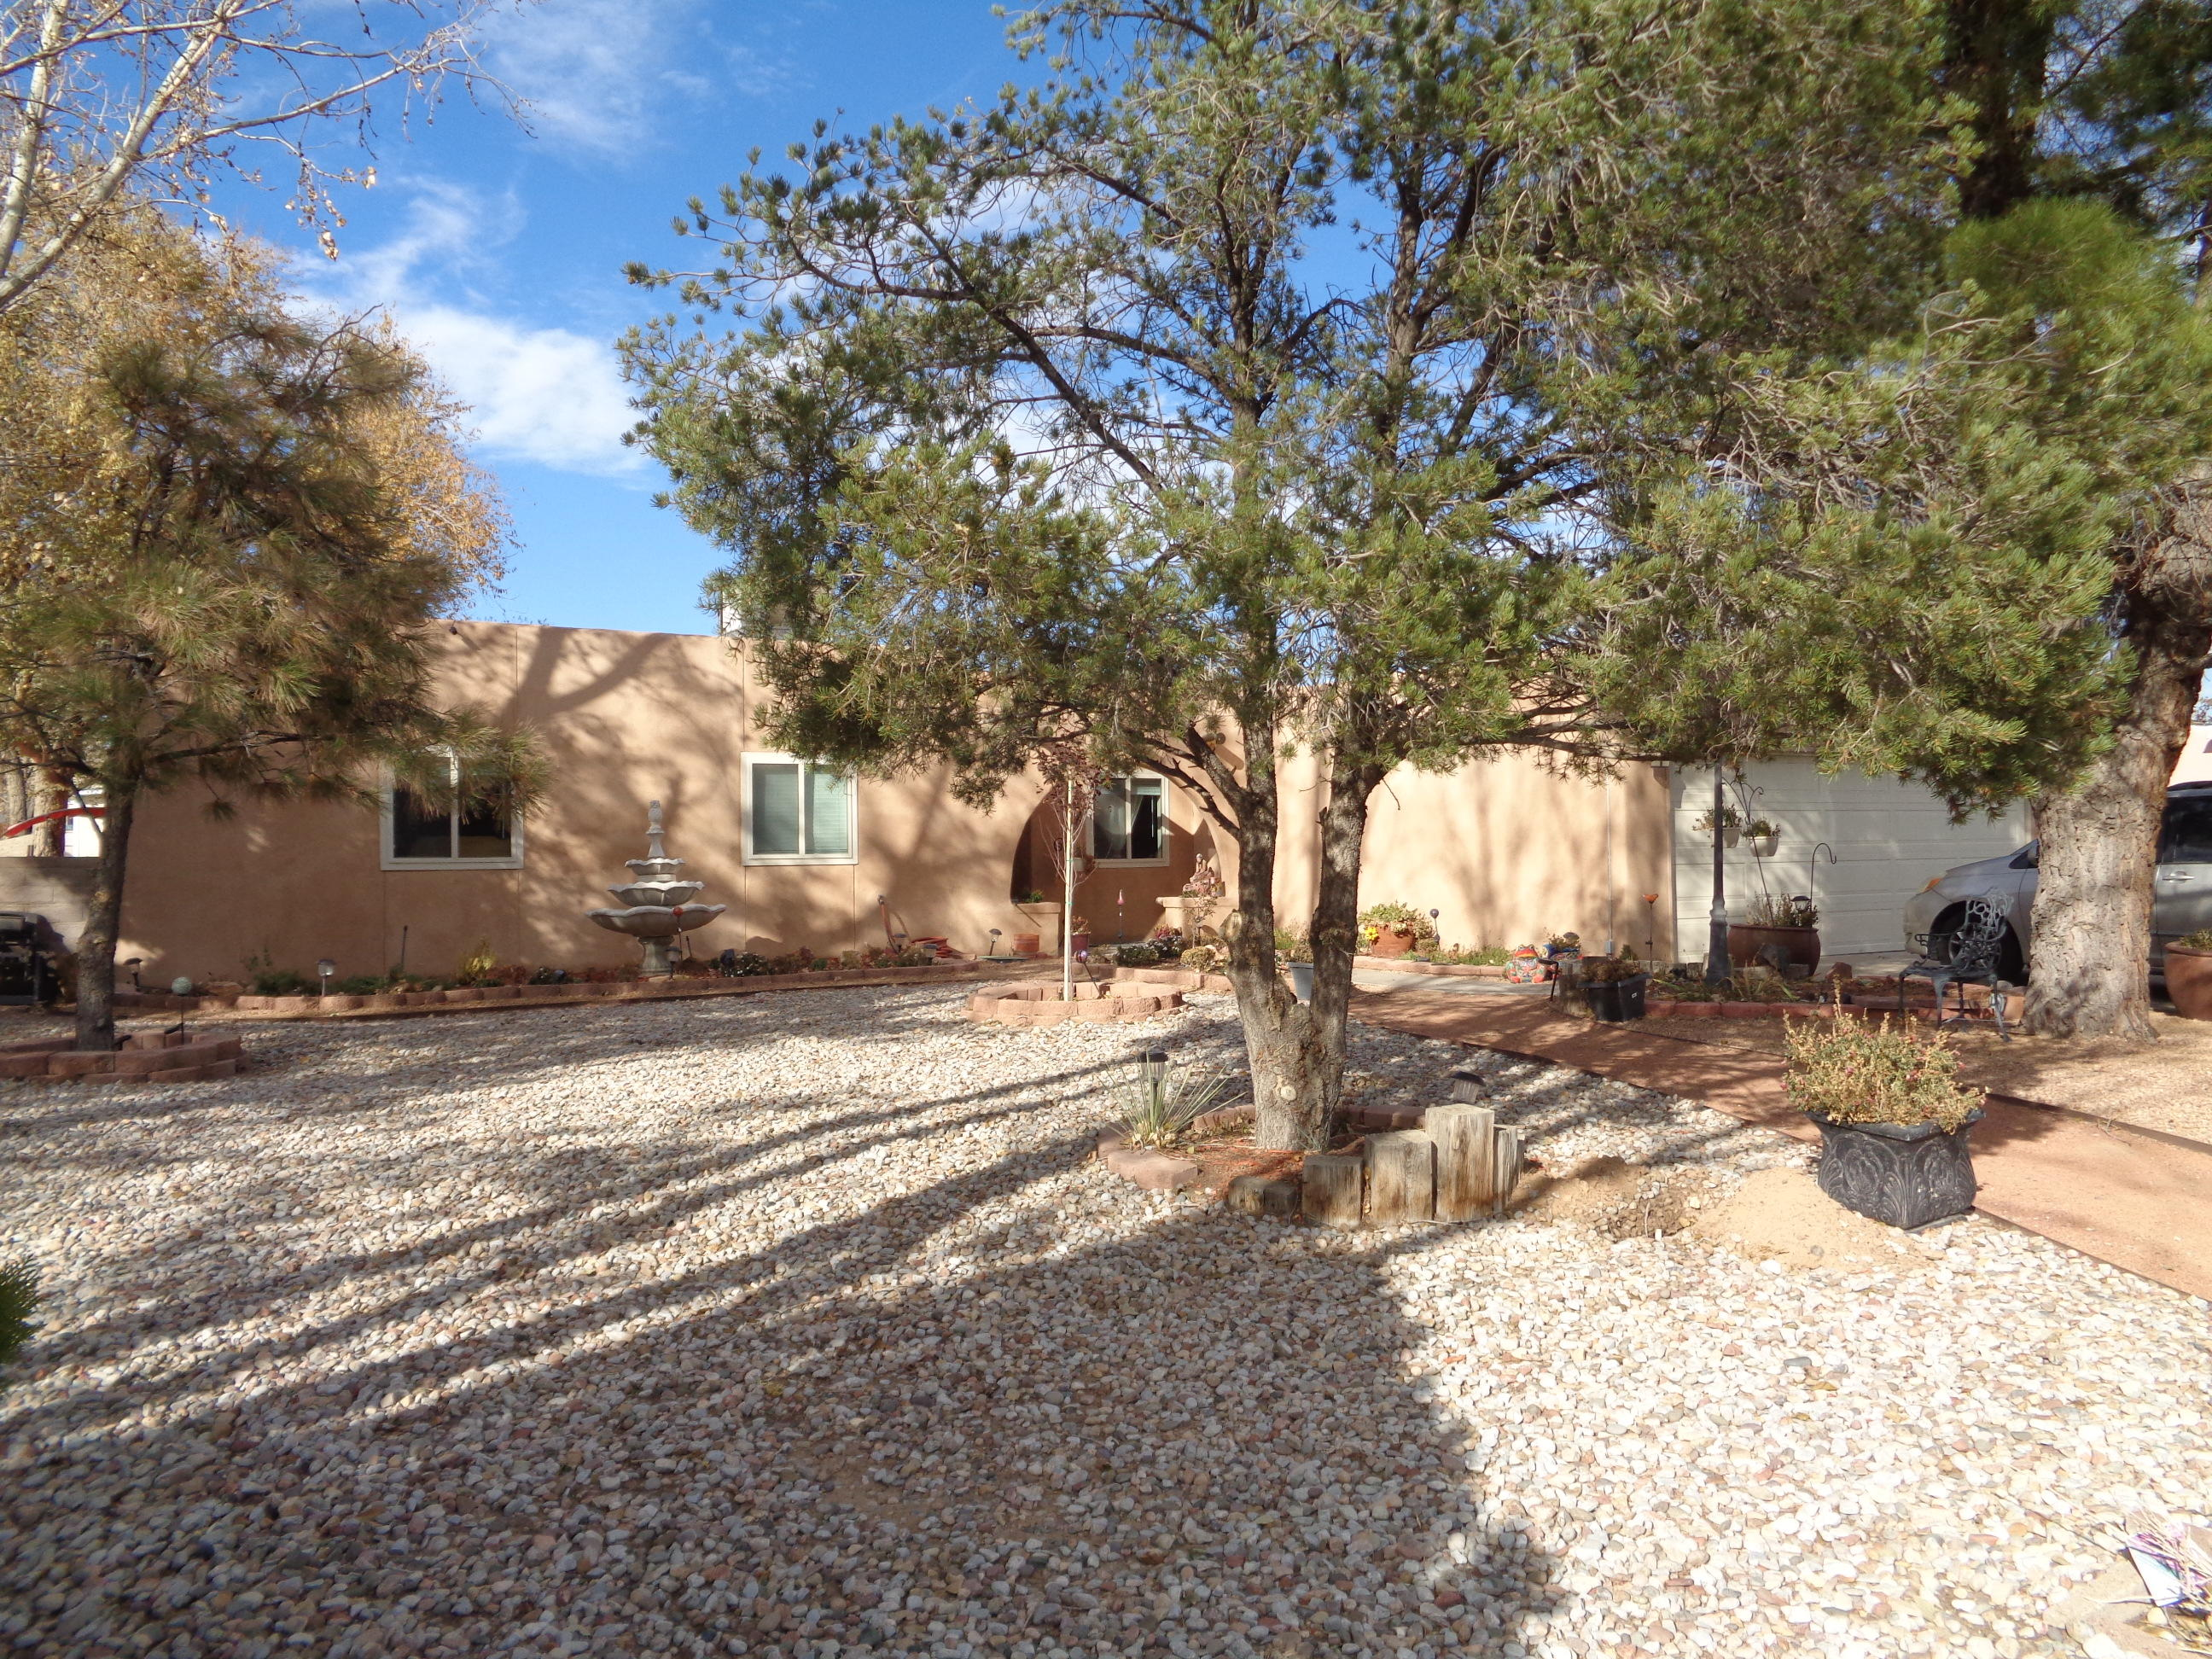 Fantabulous Pueblo-Styled Home with over 2700 SF, 5 bedrooms, 2 baths on 1/2 acre!  FP w/ insert in living room.  Island kitchen has gorgeous granite counters, loads of cabinets, stainless steel appliances and snack bar.  Large dining area plus breakfast nook.  Master suite w/ double sinks, jet tub and walk-in closet.  Garage converted into huge bedroom.  Currently one bedroom used as custom closet, but can easily be changed back.  Newer HVAC combo.  Covered patio (outdoor kitchen in progress), open patio, pond, fully landscaped w/ great lawn, trees, vines, bushes and garden.  Back yard access to 19x41x15 RV/Carport with 220 hook-up.  12x20 and 12x12 sheds w/ electricity.  Seller will consider financing with large down payment.